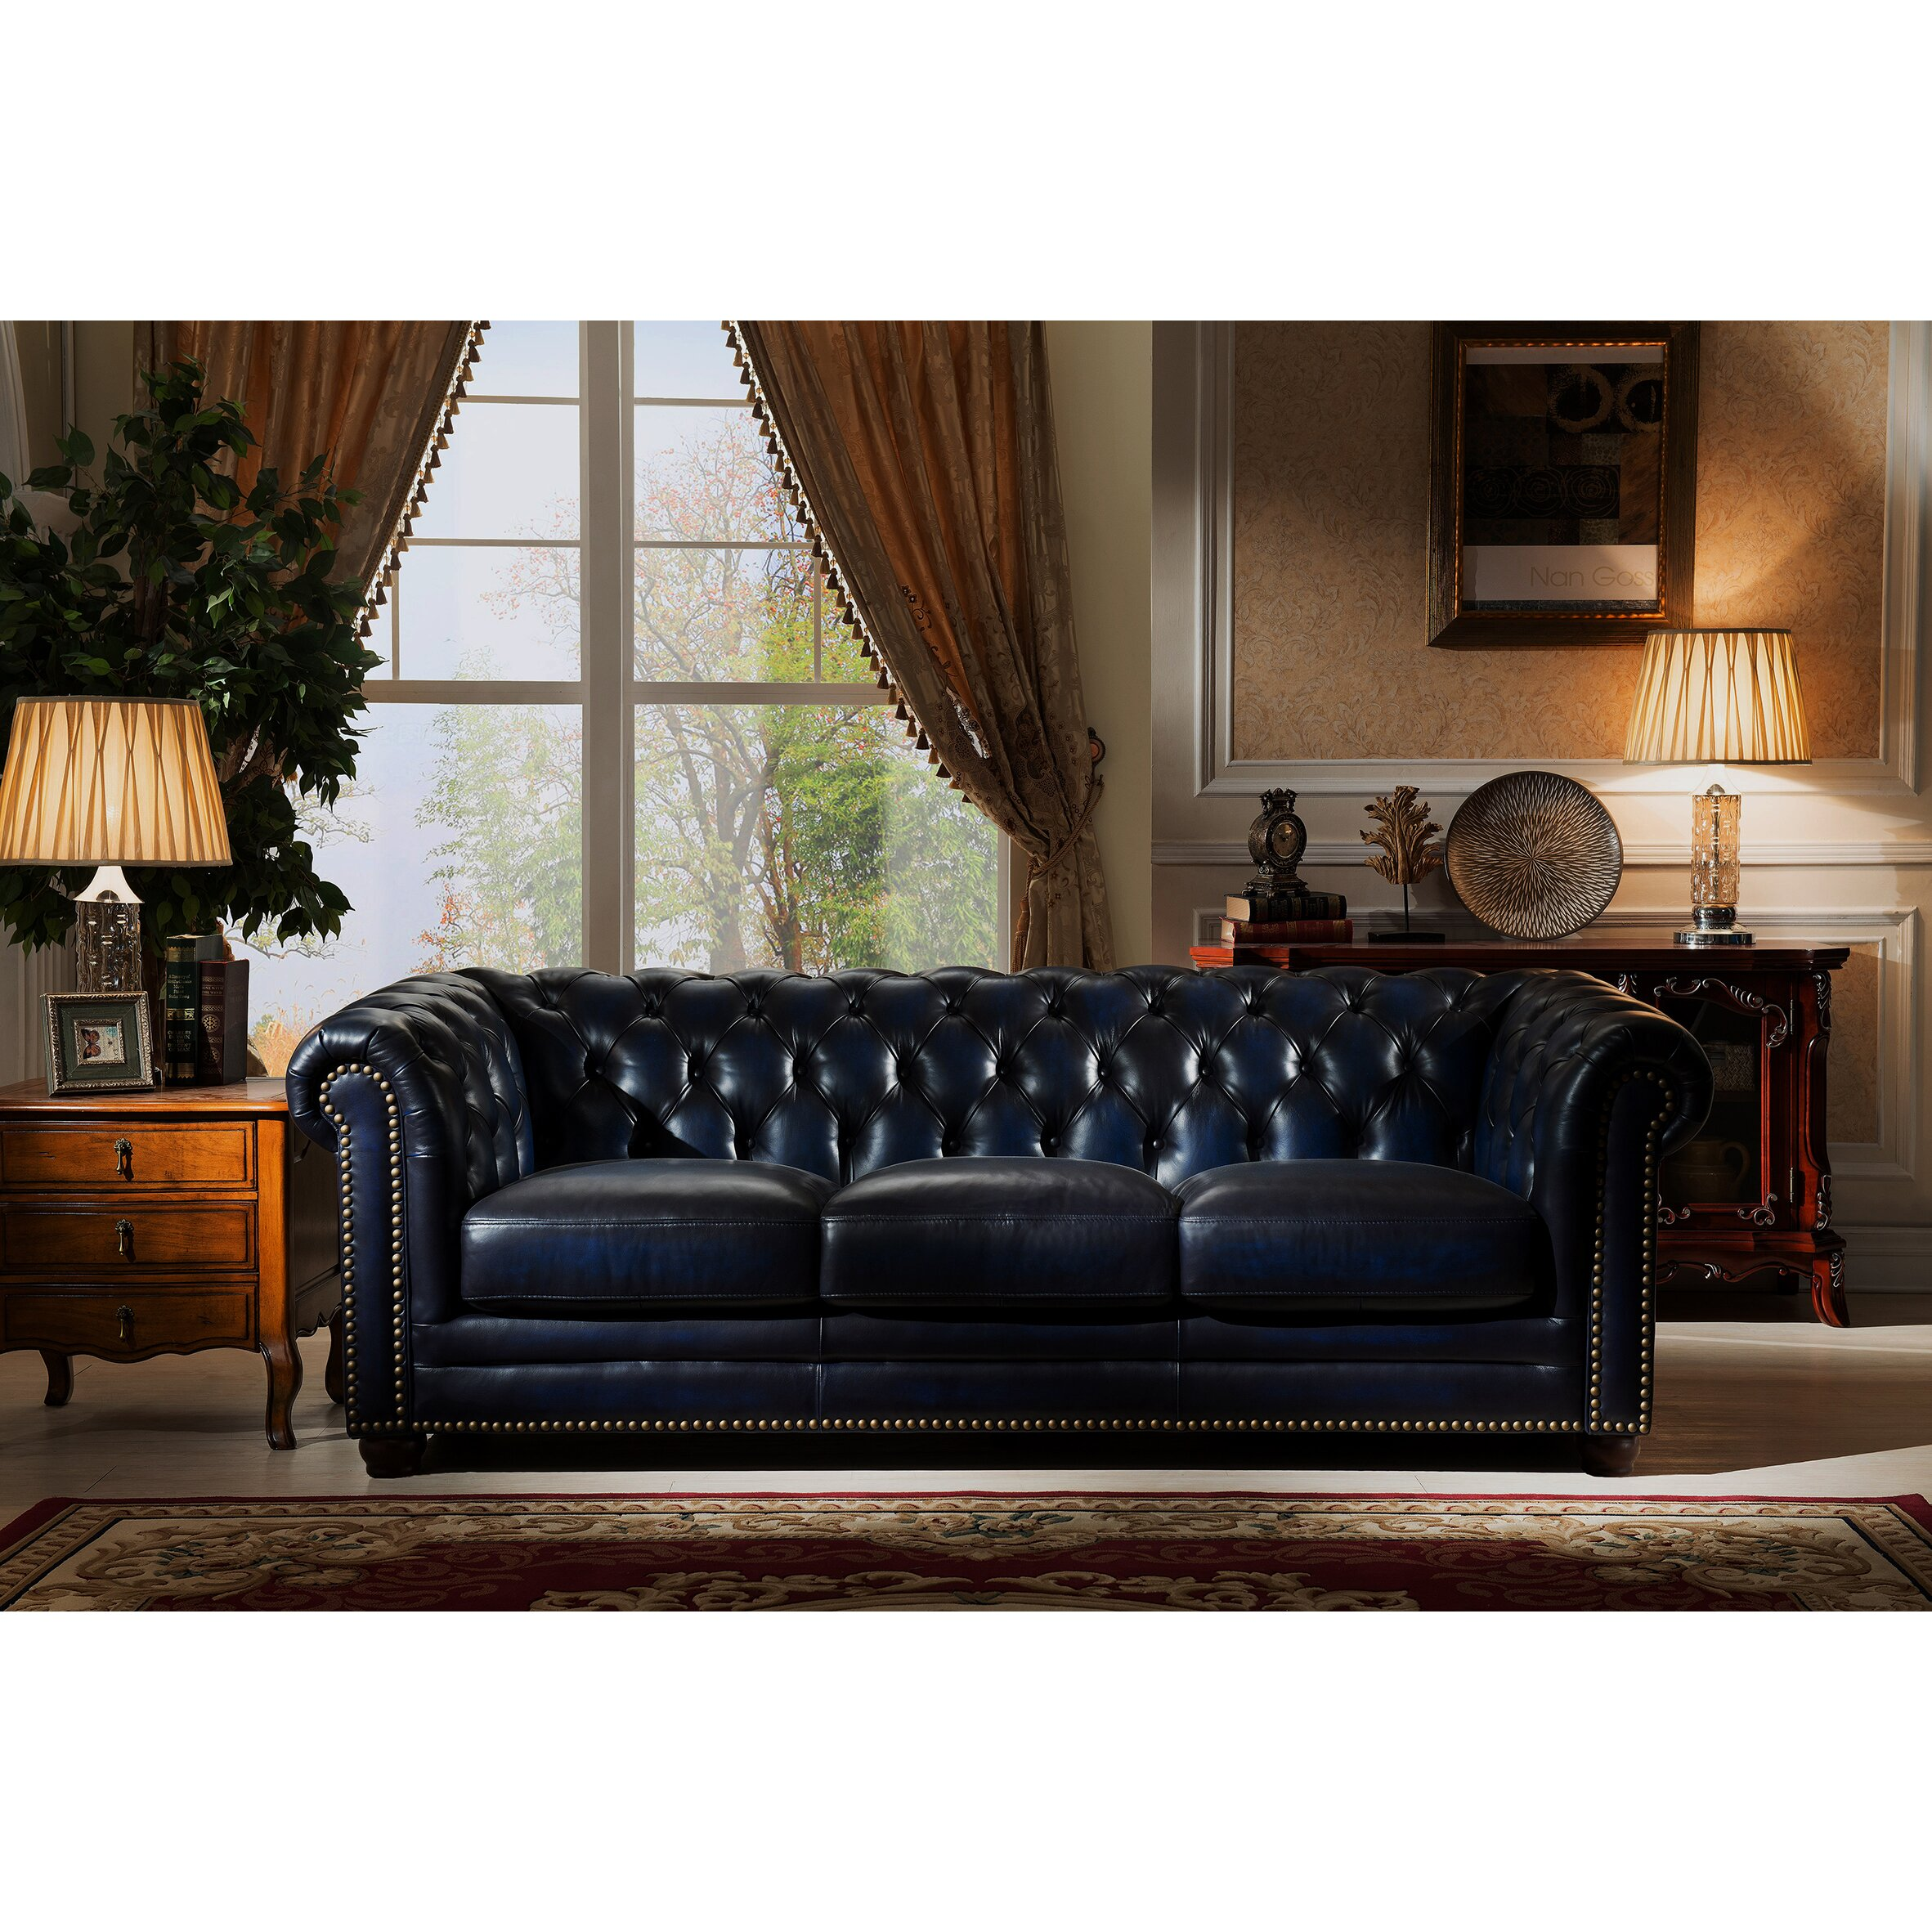 Amax nebraska chesterfield genuine leather sofa loveseat and chair set Bedroom furniture chesterfield